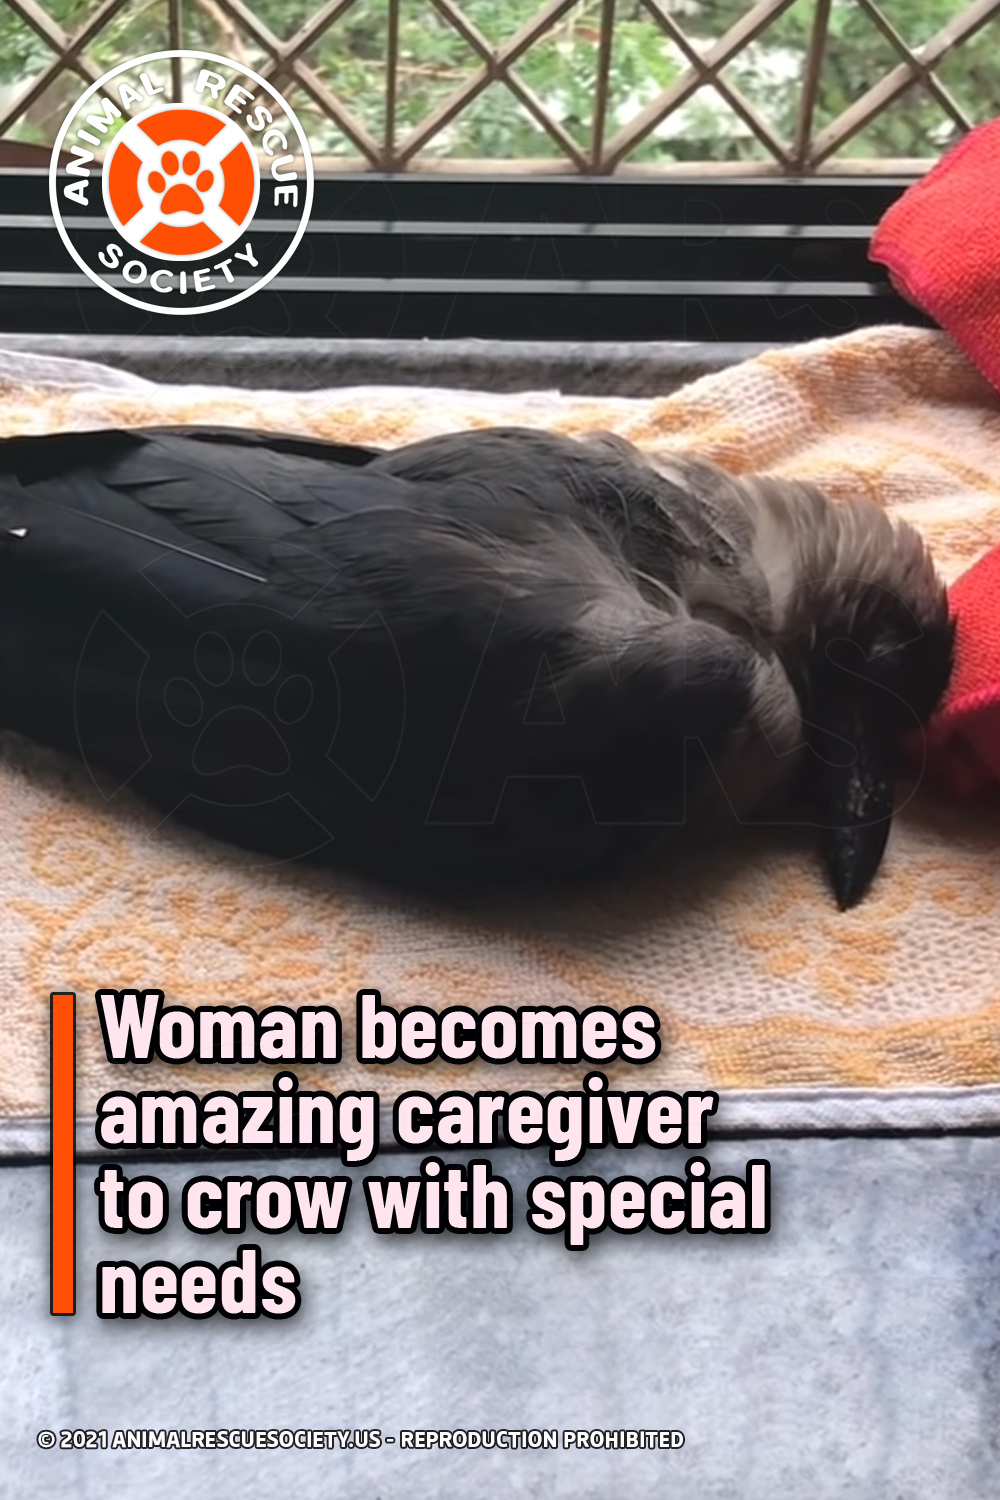 Woman becomes amazing caregiver to crow with special needs